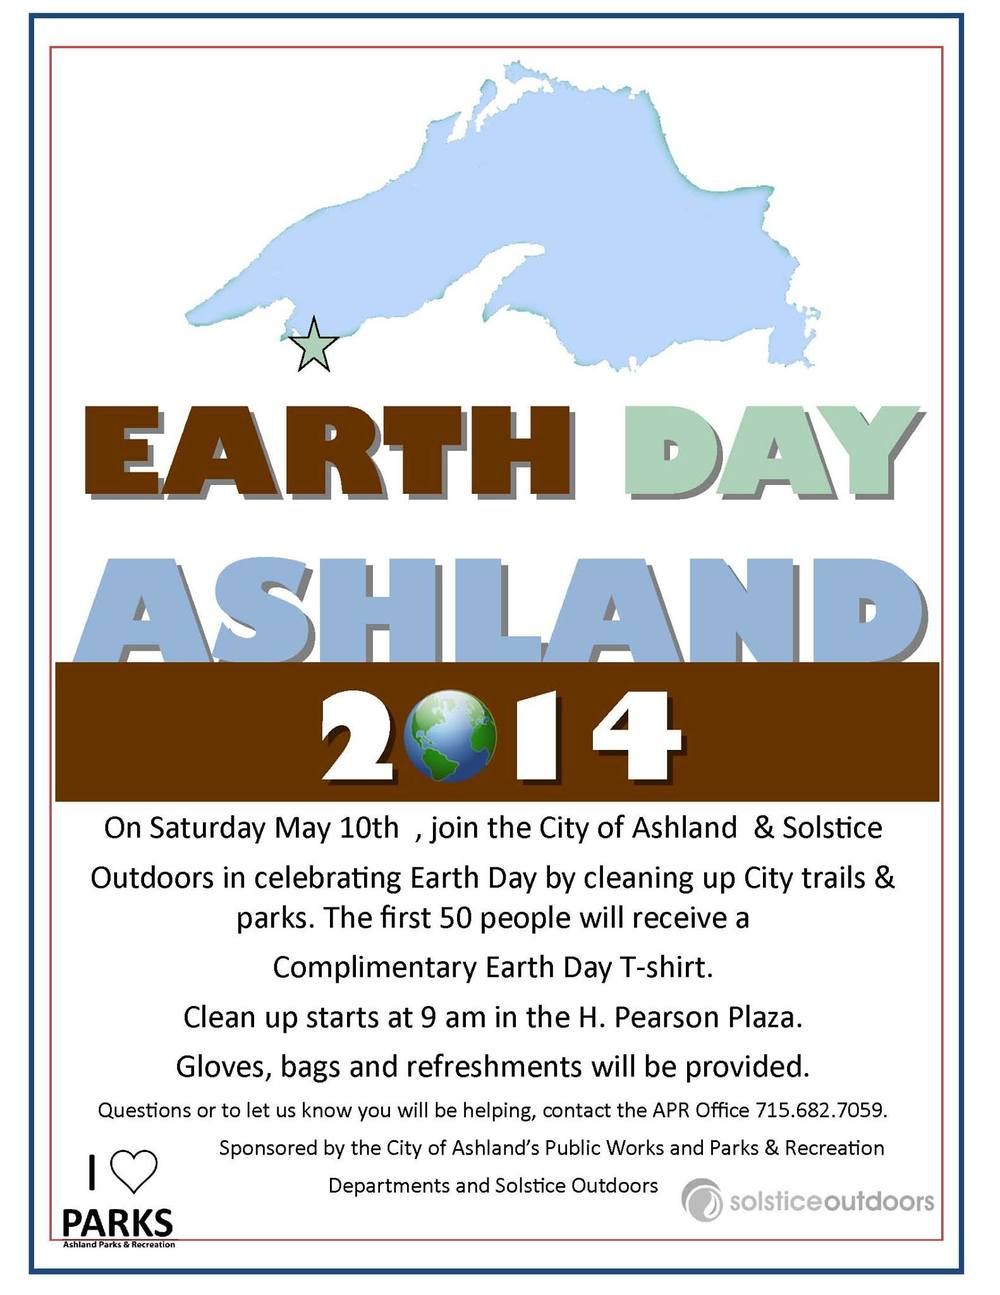 Blog Solstice Outdoors The Best Ways To Run Power Page 1 Of 2 Join City Ashland Parks And Recreation For An Earth Day Clean Up